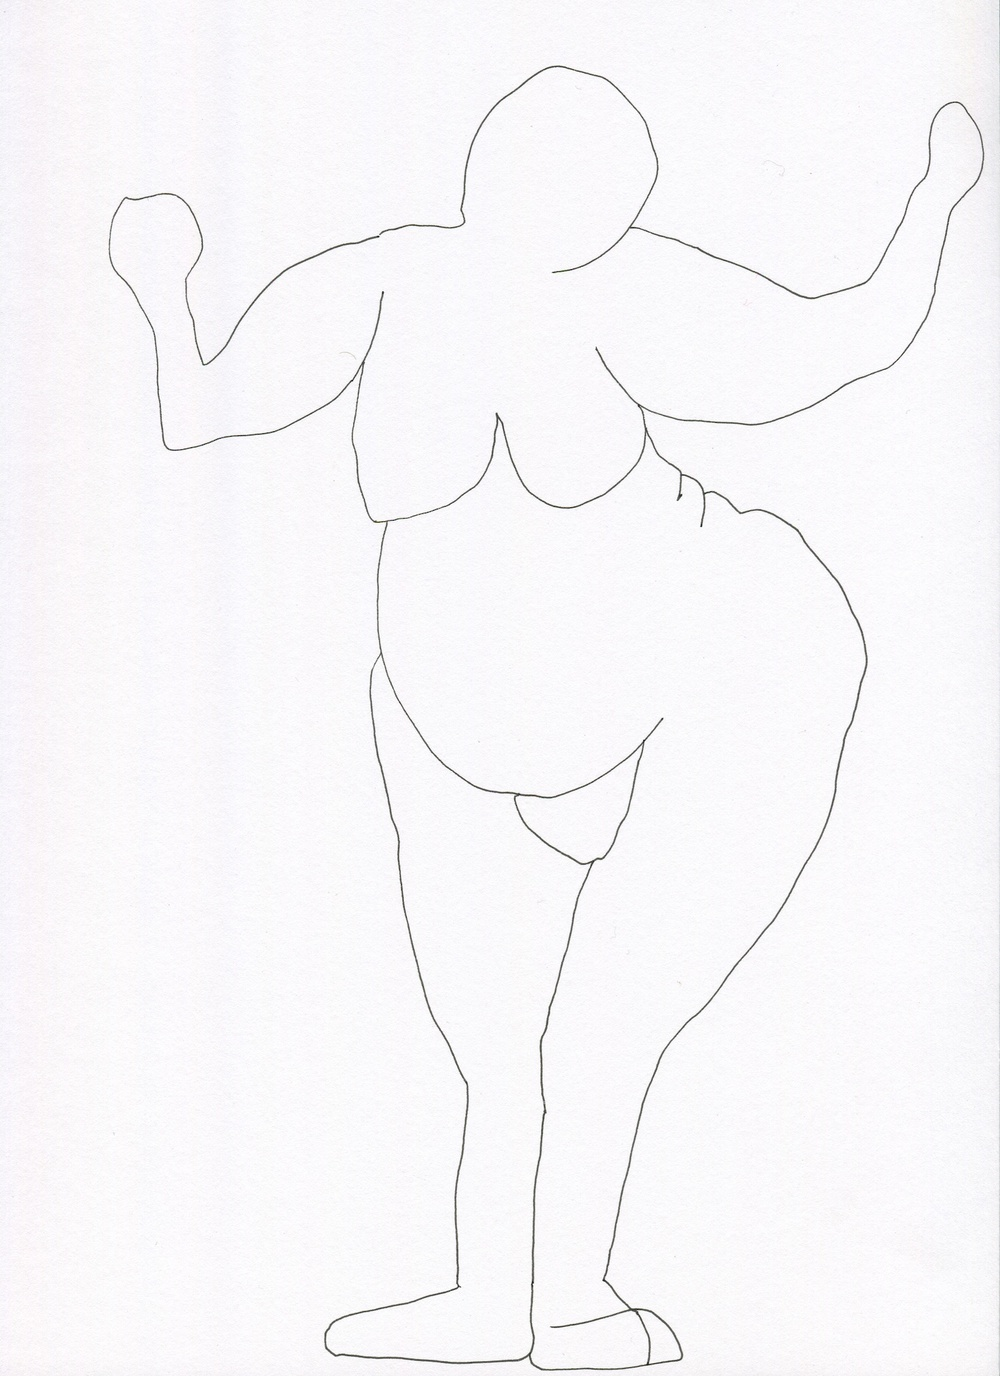 Sweet Ecstacy from the Venus of Brisbane series, 2015, Ink on paper, 21.0 x 30.0 cm